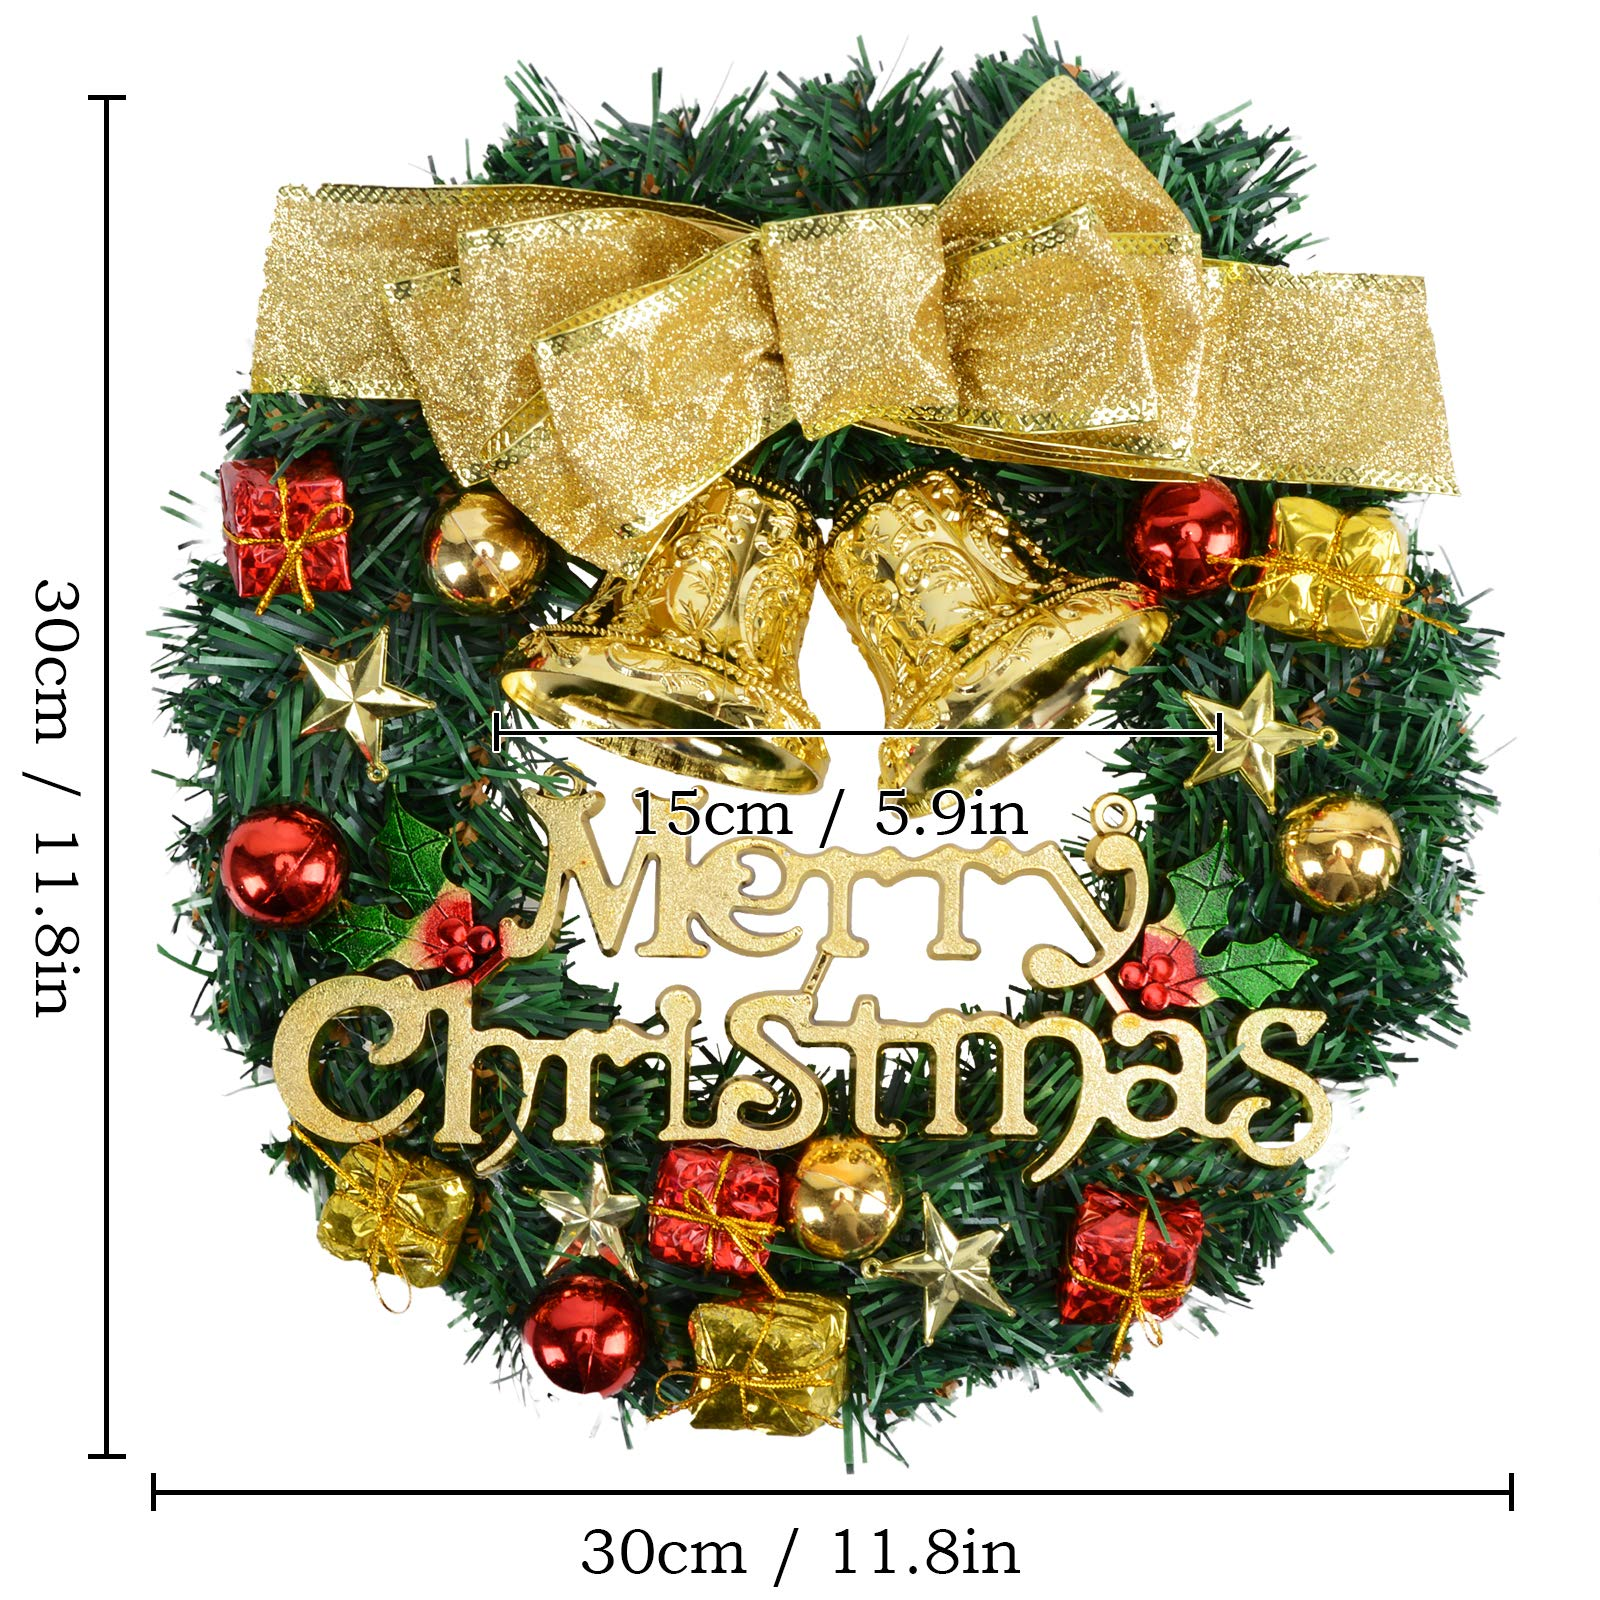 Voilamart Christmas Wreath 30CM/12Inch Artificial Garland with Bells Baubles and Golden Bowknot Xmas Decorations for Fireplaces Stairs Wall Door